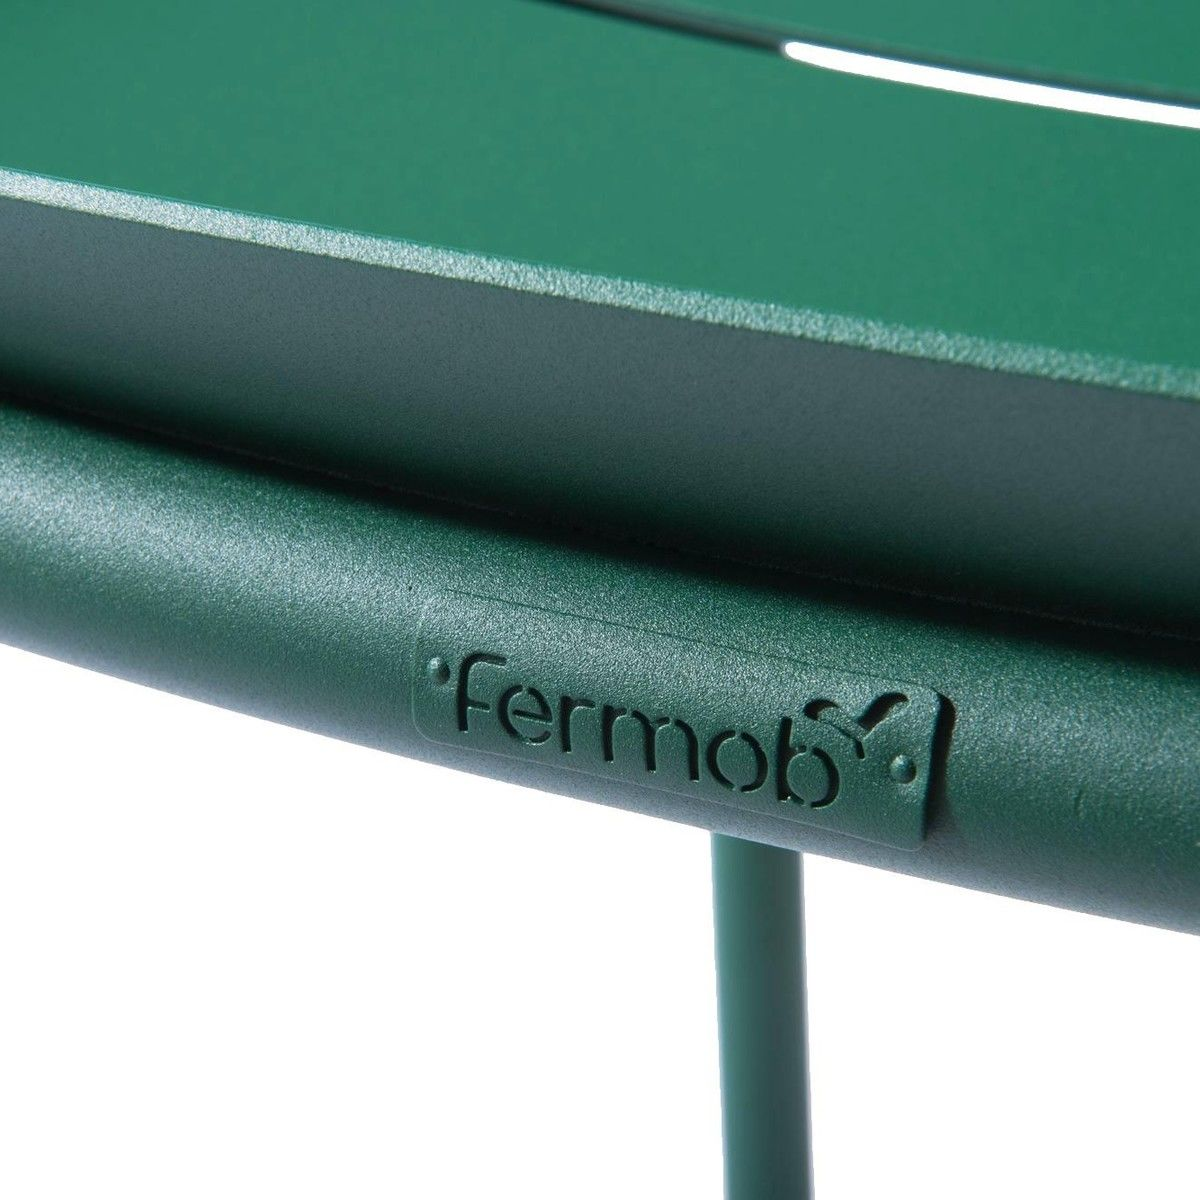 Luxembourg chaise des jardin empilable fermob - Chaise fermob luxembourg soldes ...